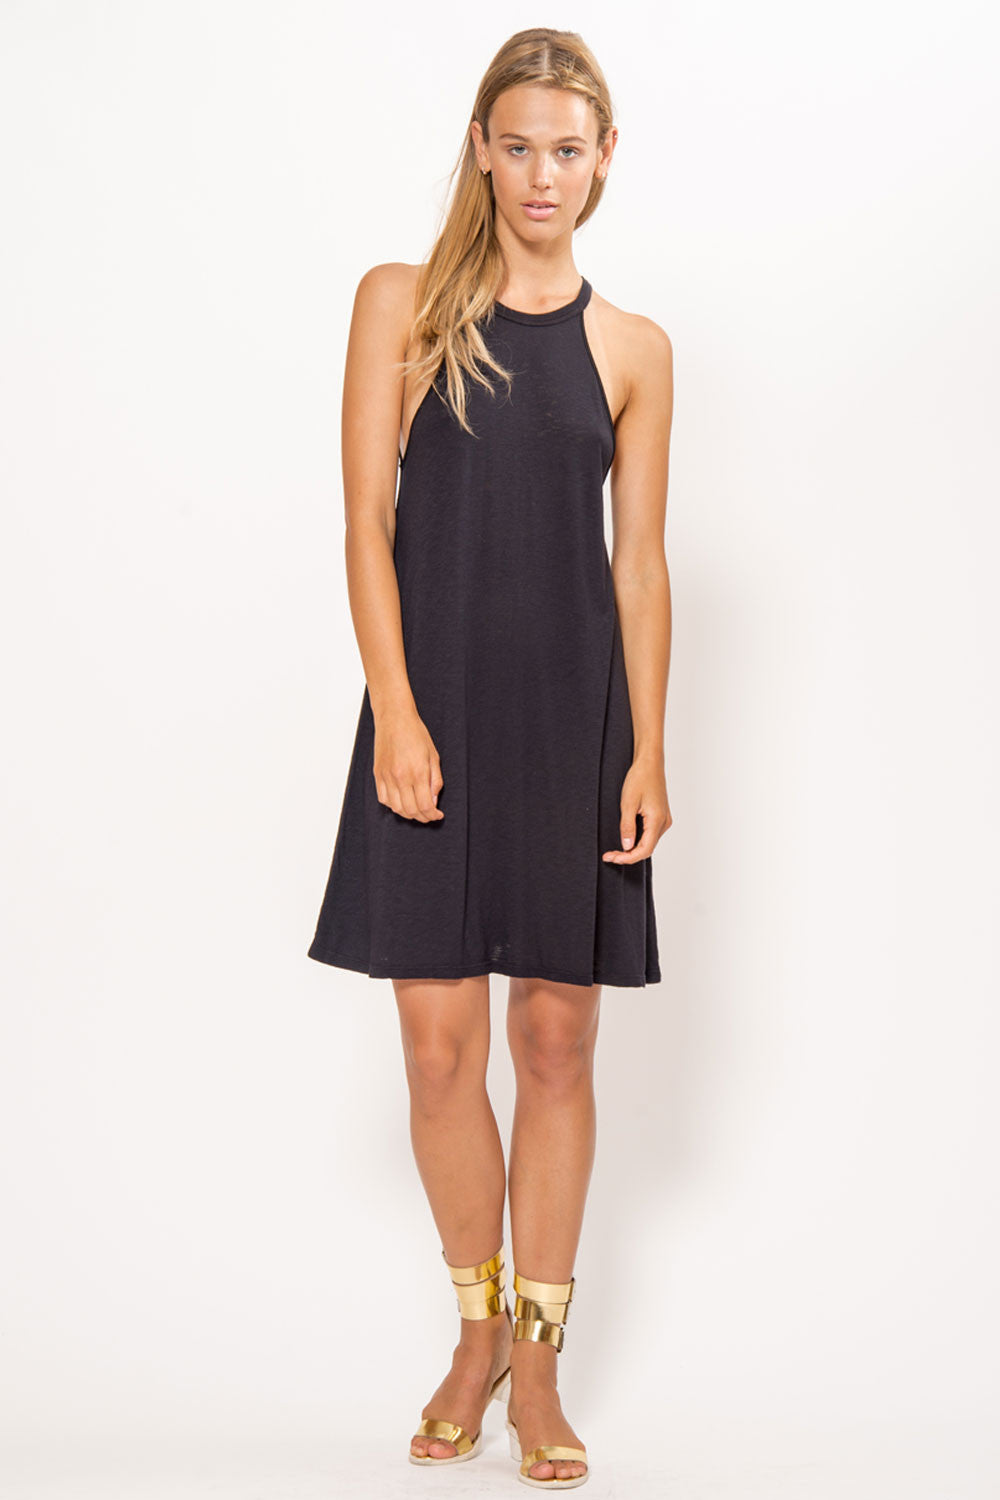 LACAUSA Petal Tank Dress - Primary New York